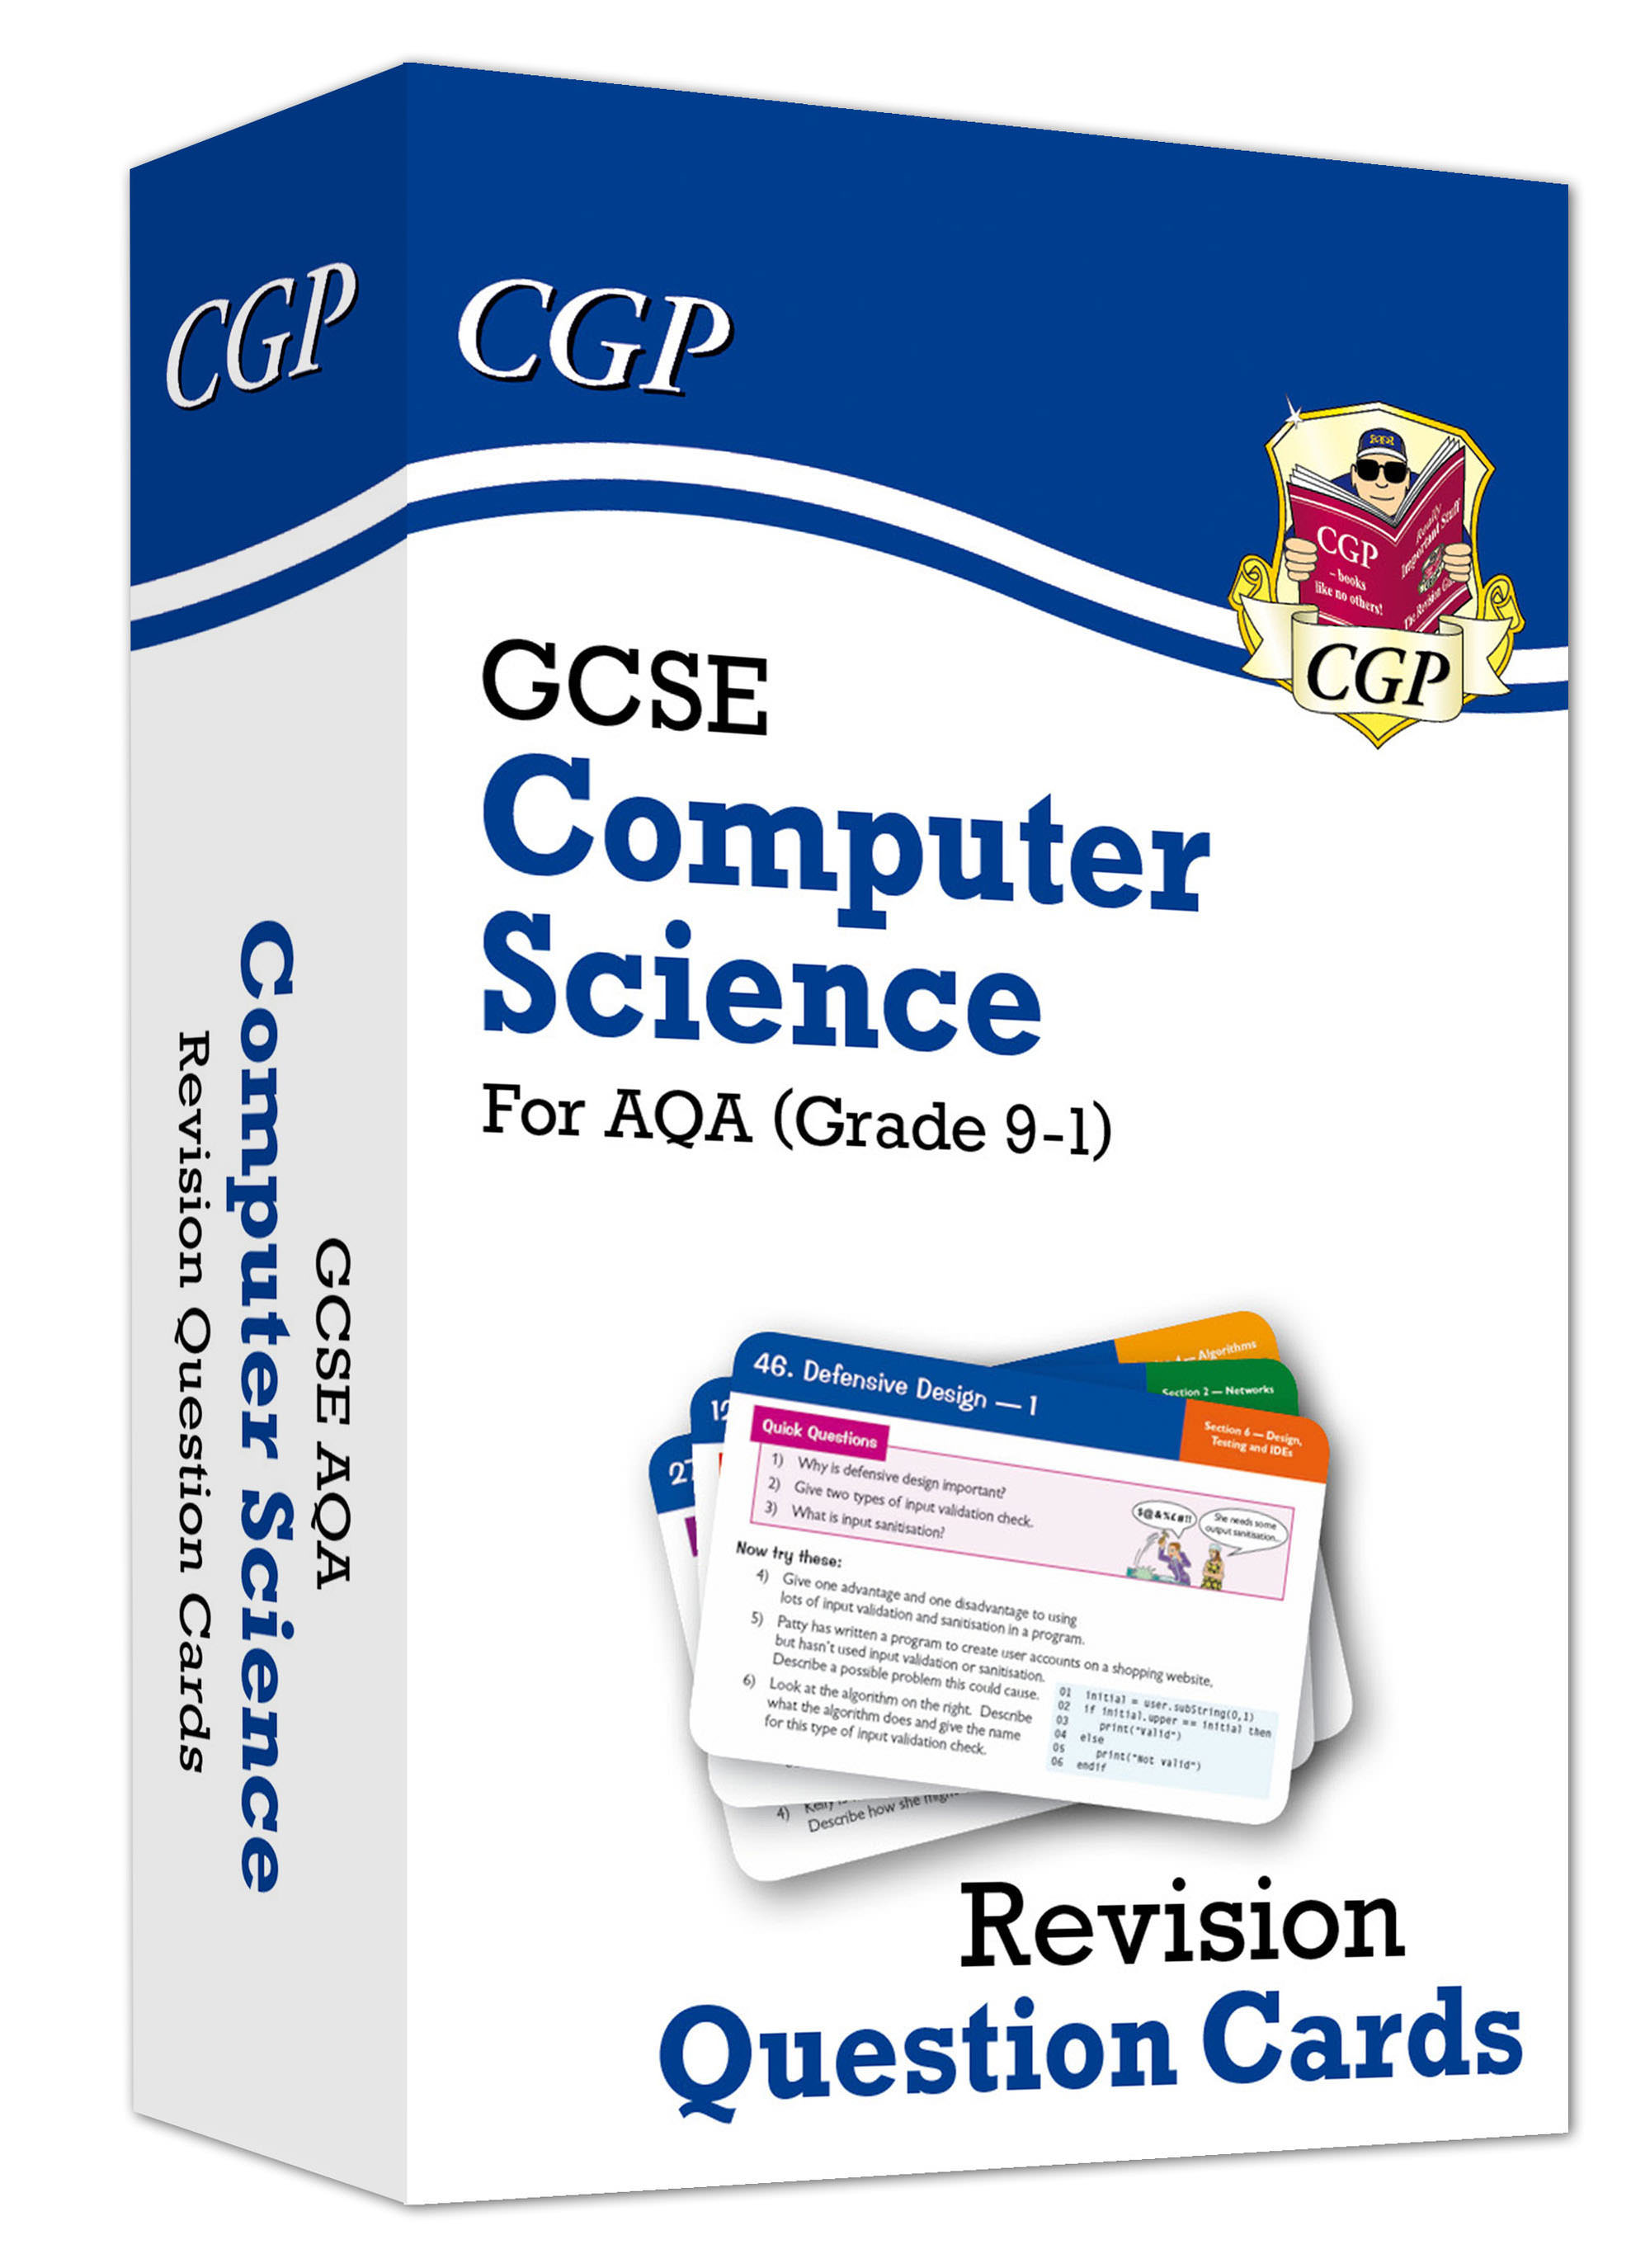 COAF41 - New Grade 9-1 GCSE Computer Science AQA Revision Question Cards